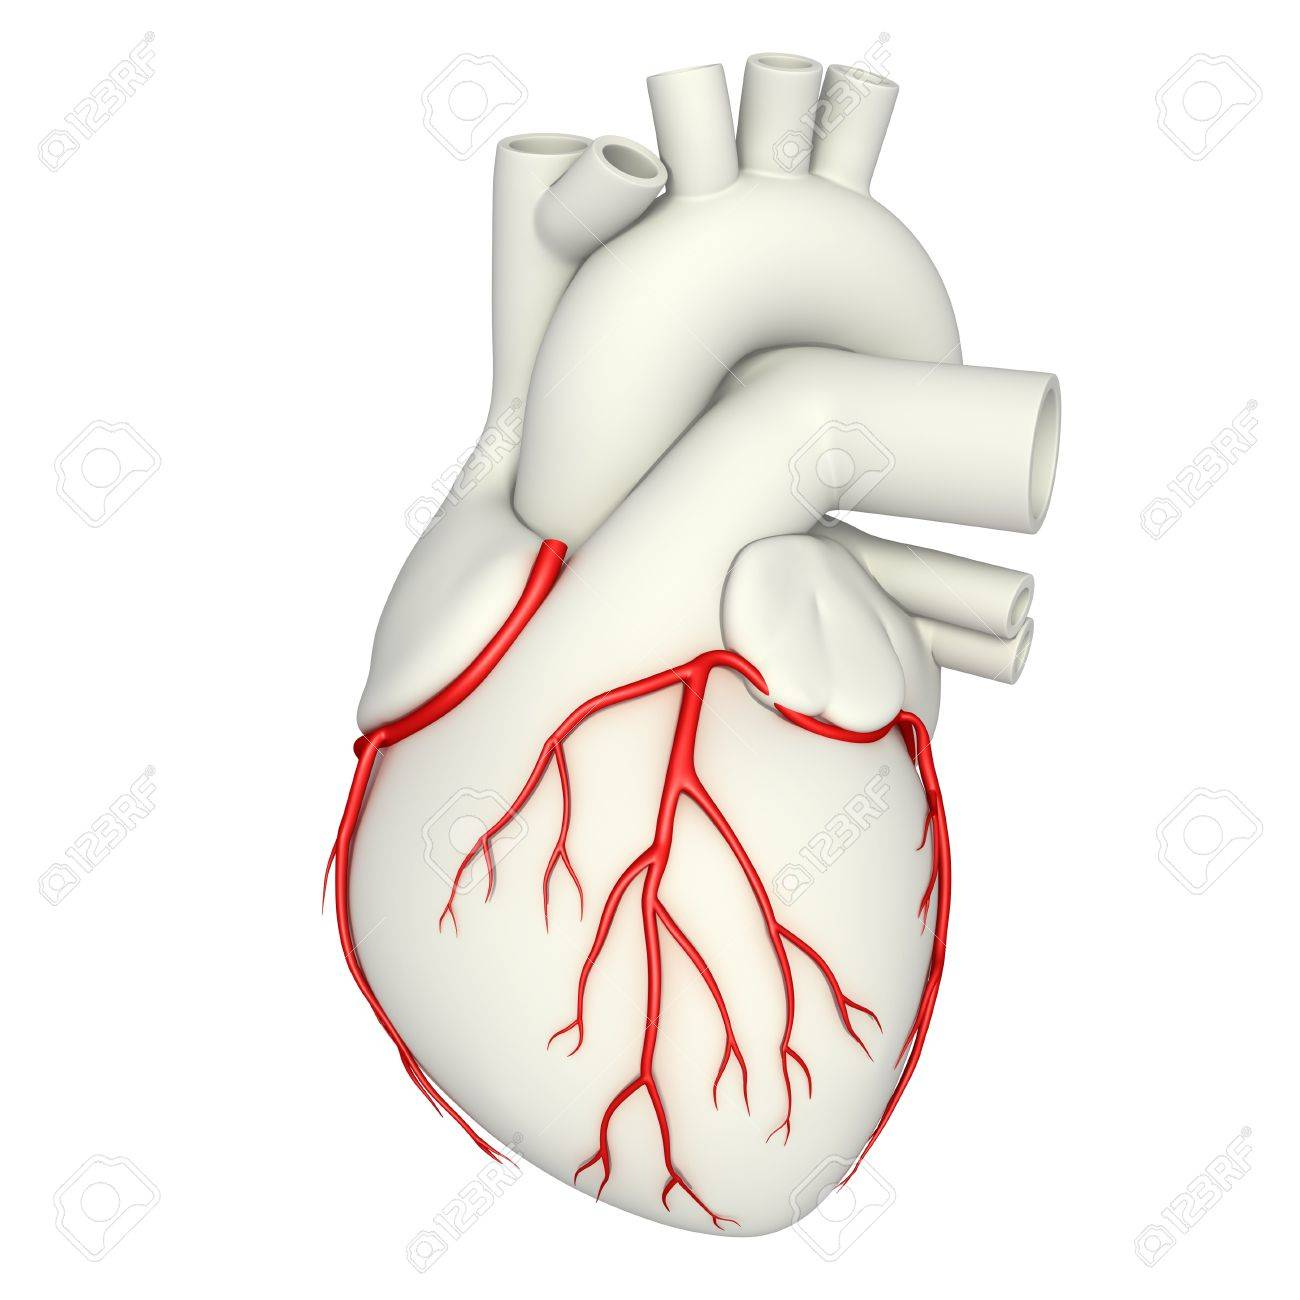 Illustration Of The Heart\'s Coronary Arteries Stock Photo, Picture ...